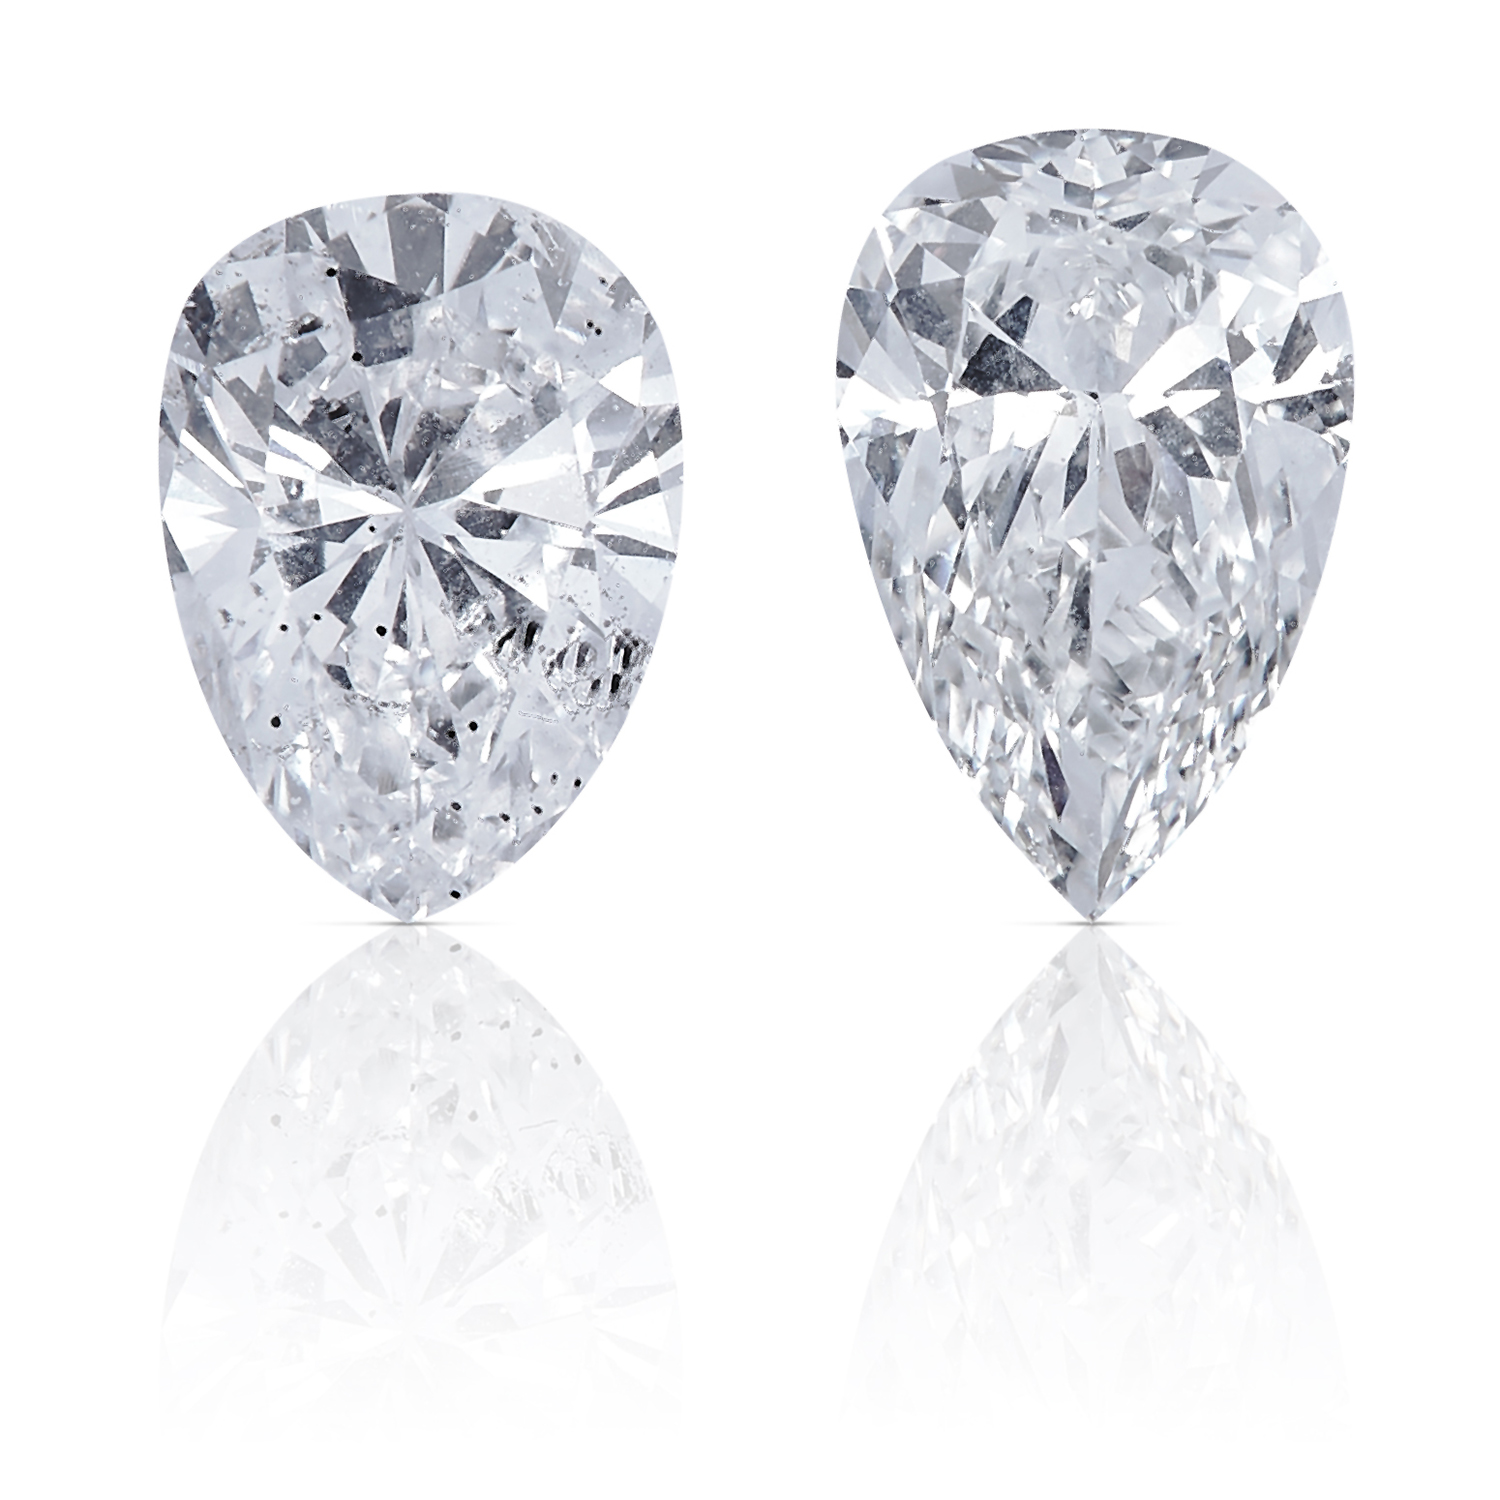 TWO PEAR SHAPED BRILLIANT CUT DIAMONDS, TOTALLING 0.55cts, UNMOUNTED